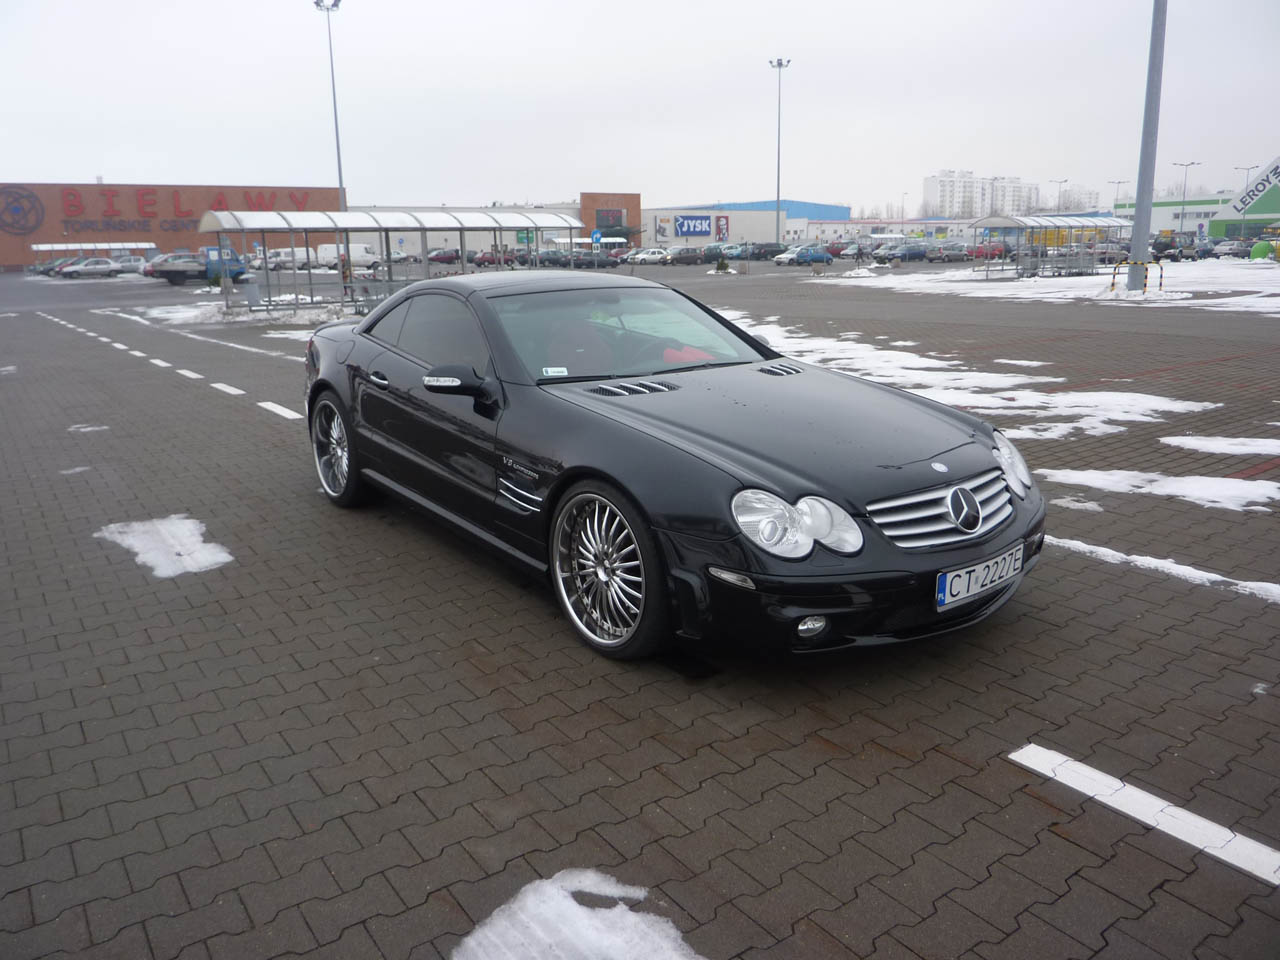 File AMG Taxi besides File Mercedes CLA Shooting Brake  MSP15 in addition Ah My Goddess Chapter 308 Finale as well File Mercedes Benz E63 AMG 4MATIC STATIONWAGON  S212  front in addition How Can A Dakar Truck Help Lewis Hamilton Retain His F1 Crown 678016. on type amg